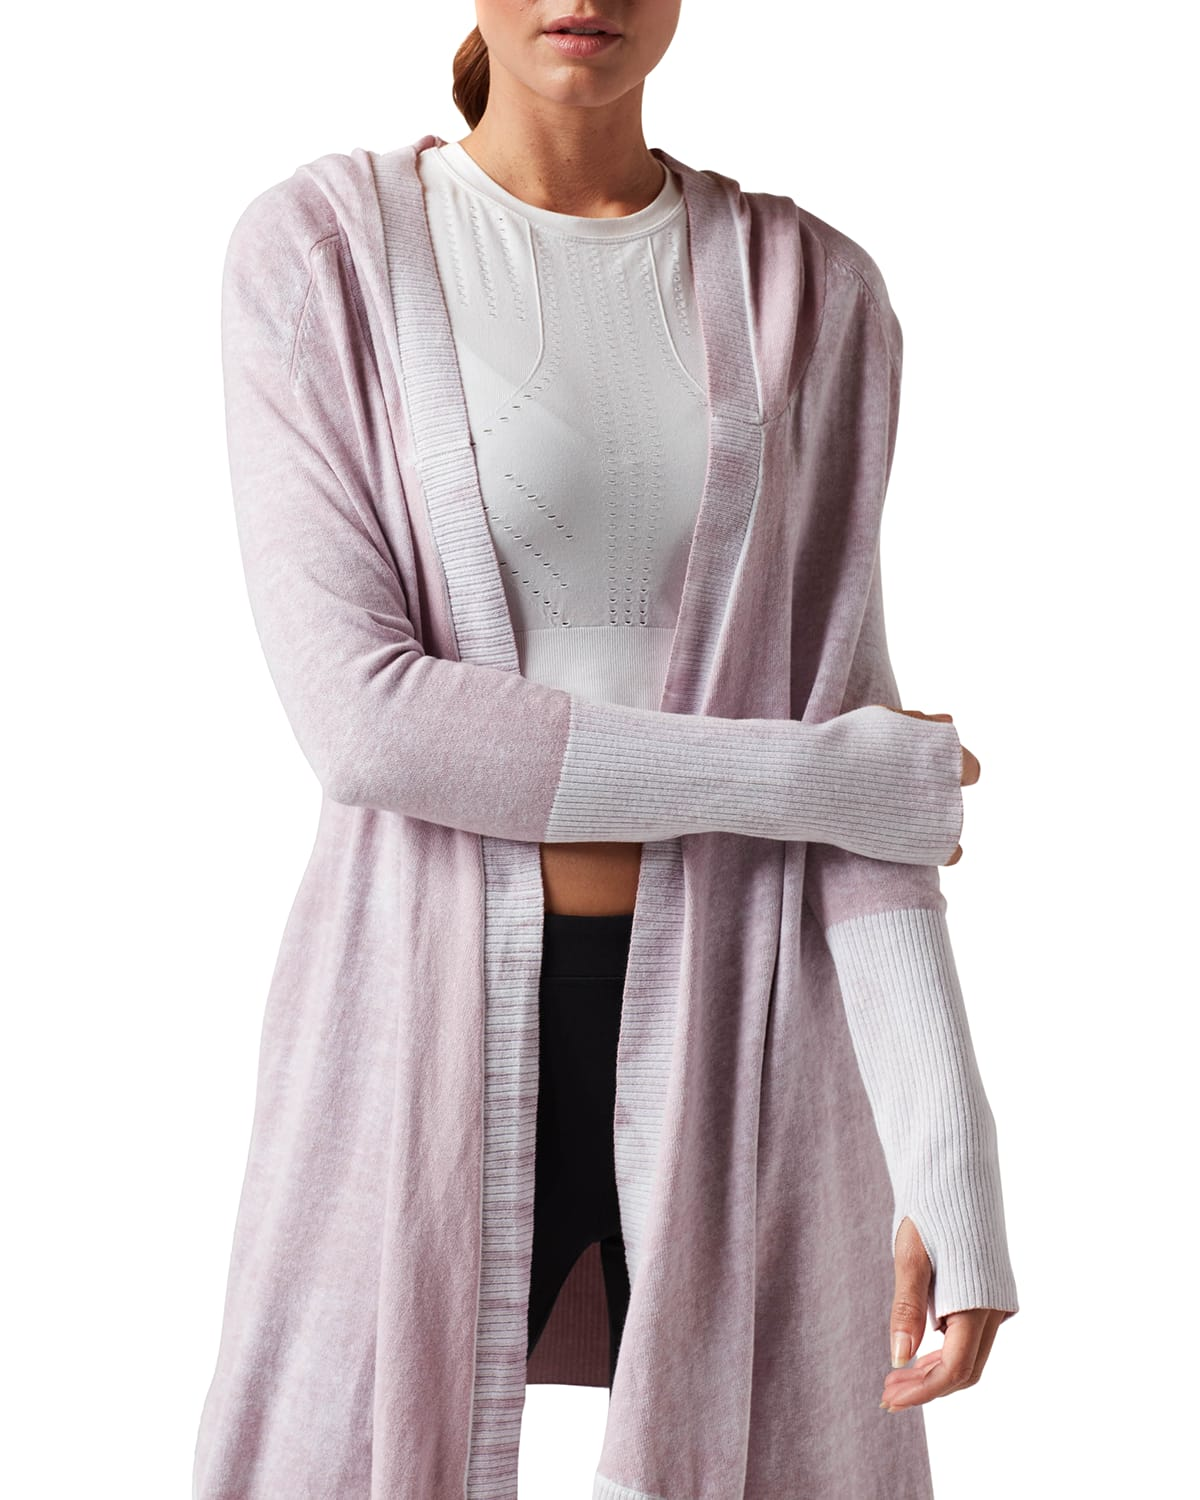 Huntress Hooded Open-Front Cardigan